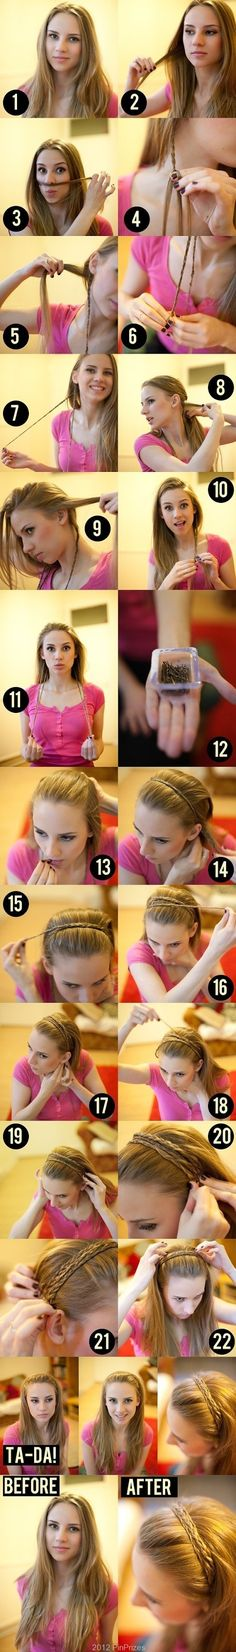 braid your hair and use it as a headband | hairstyles tutorial. This would be good on days you need a hairband and don't have one with you.